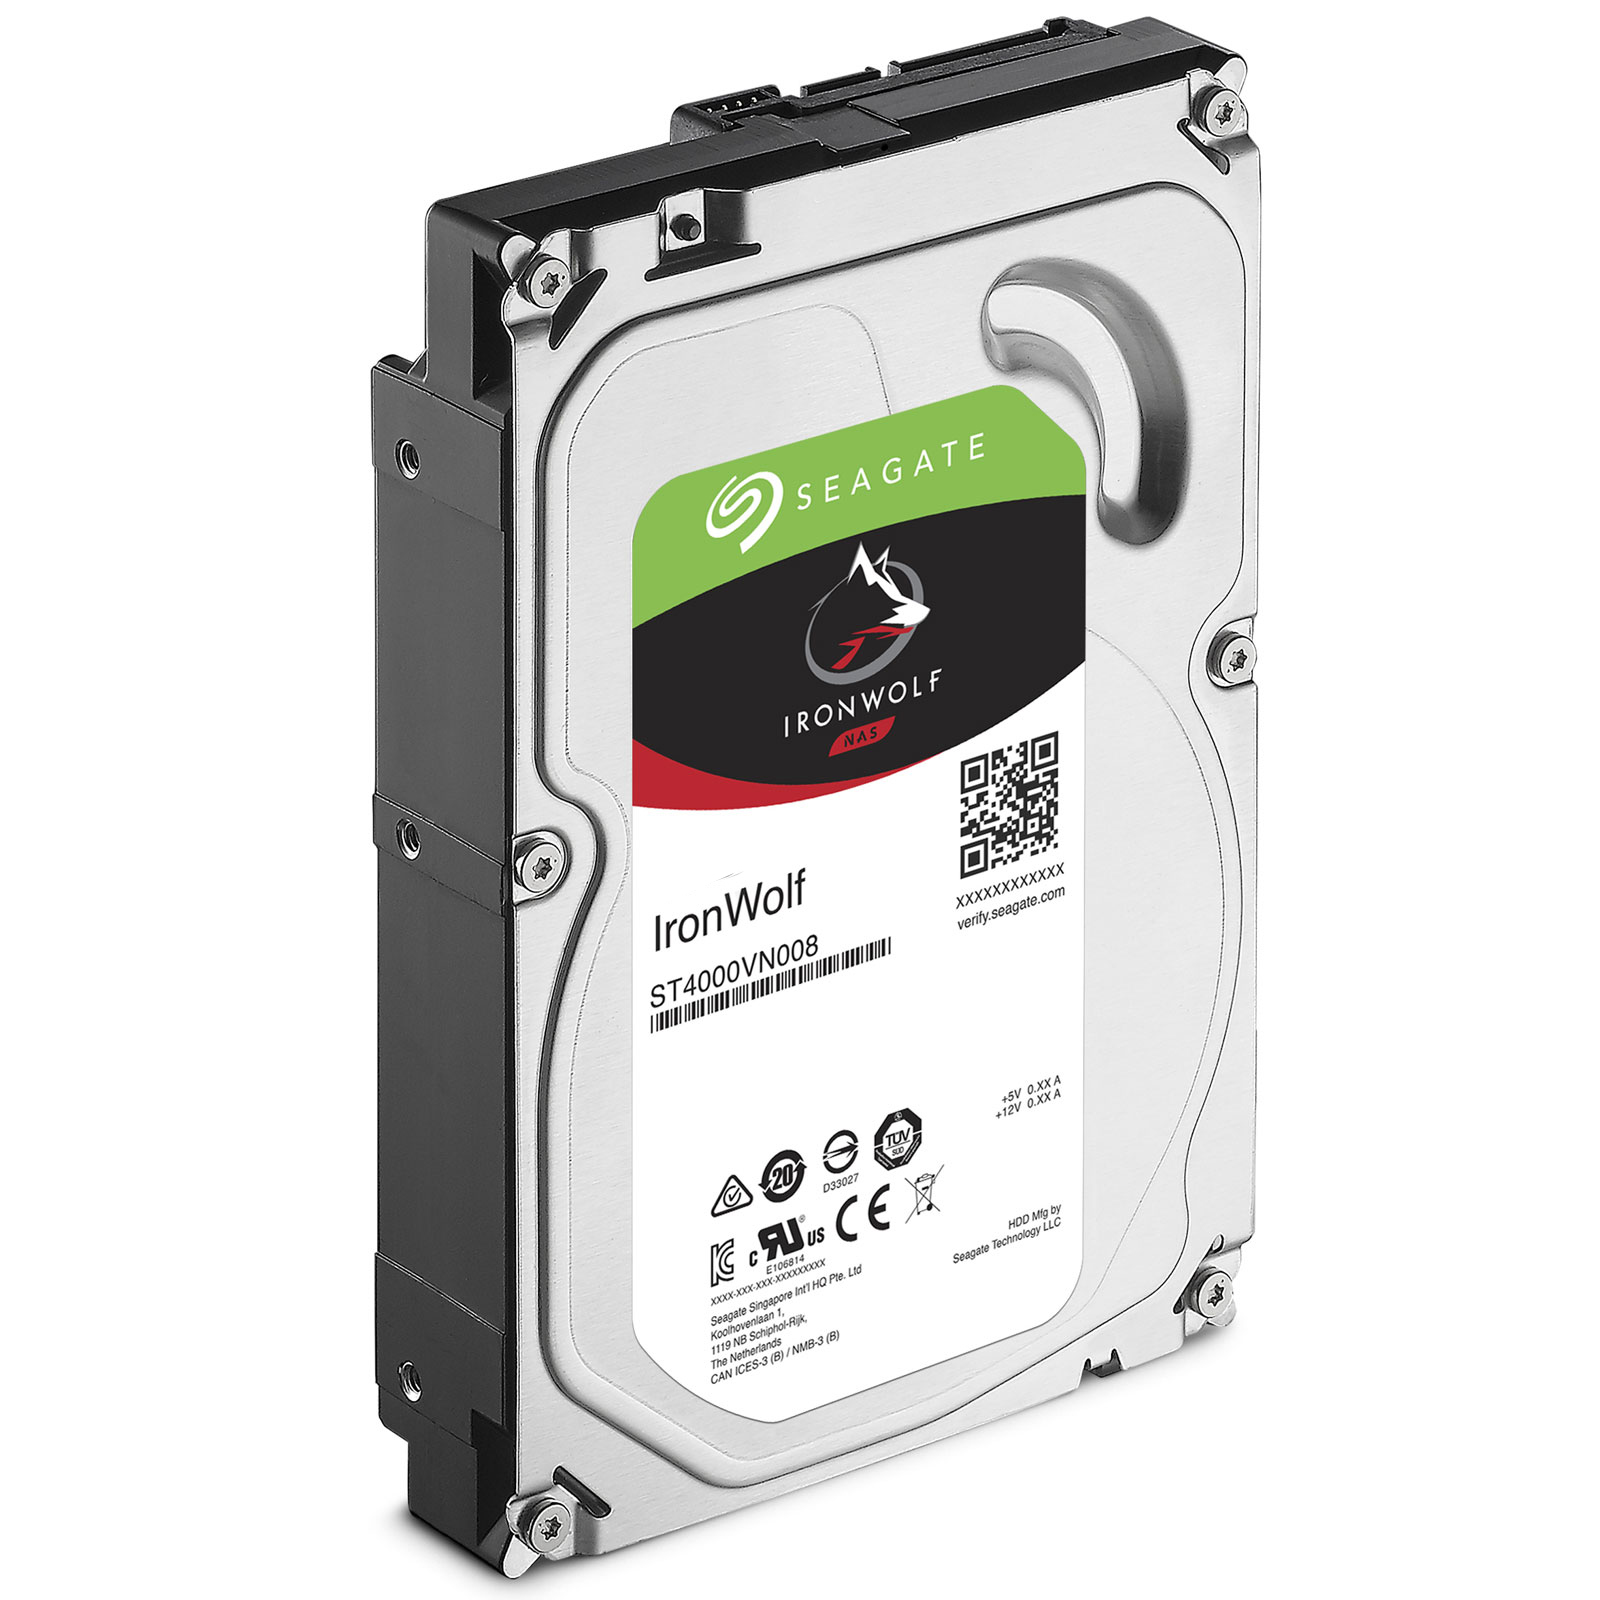 Ổ cứng gắn trong Seagate IronWolf Pro 12TB 7200rpm SATA 3.5